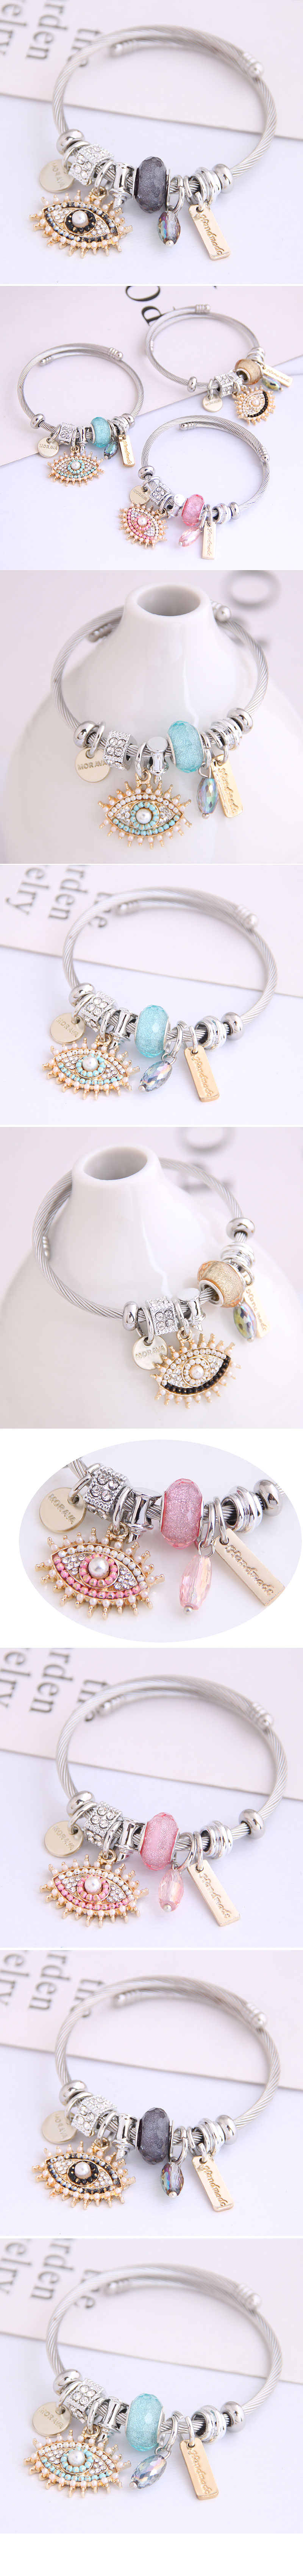 Stylish Metal Devils Eye Simple Water Drop Pendant MultiElement Accessories Bangle NHSC205082